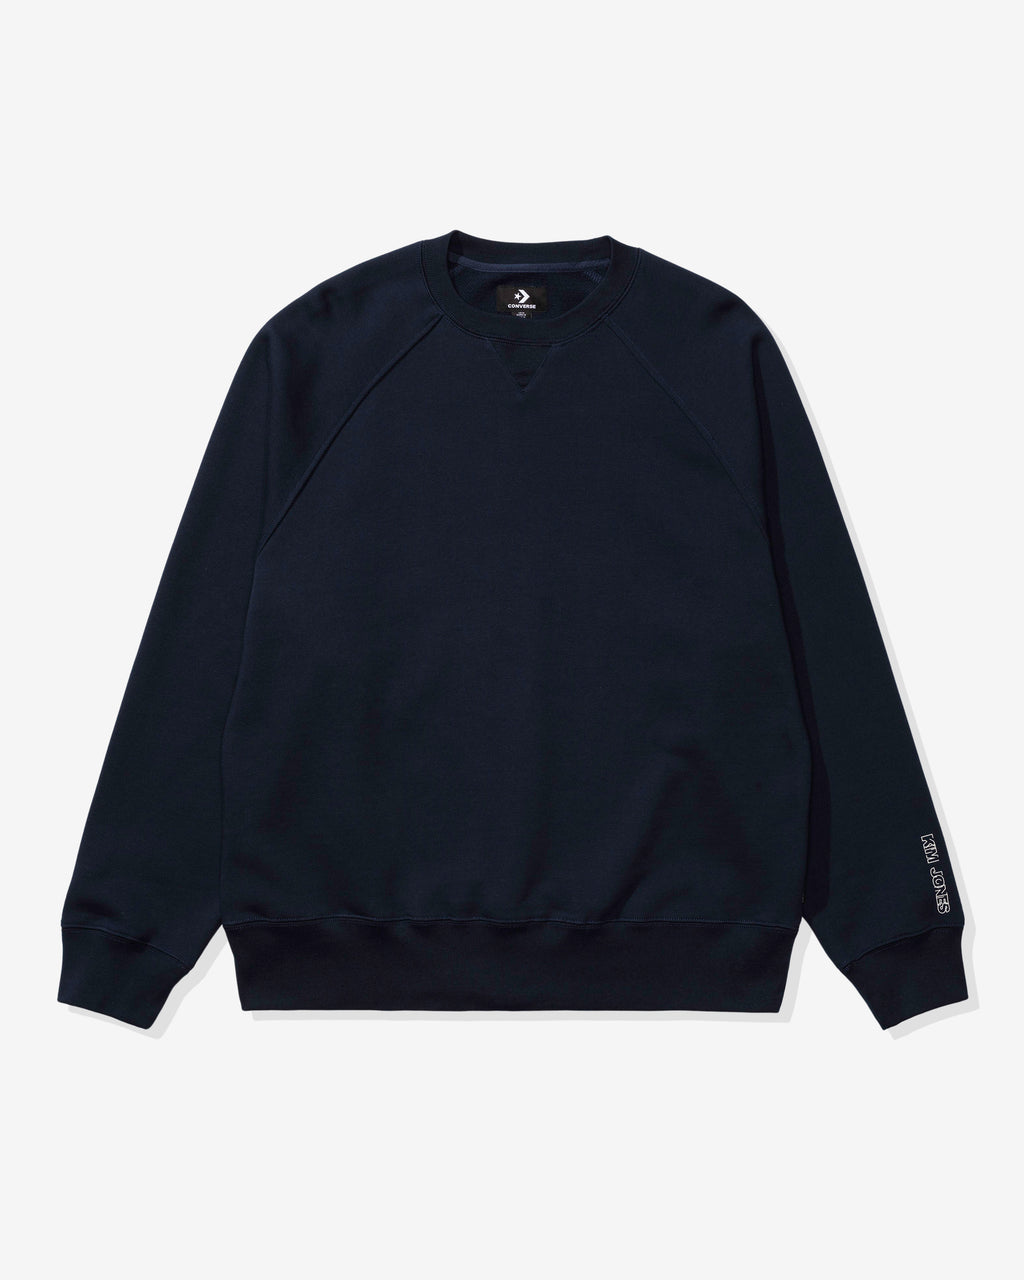 CONVERSE X KIM JONES CREWNECK - BLACKIRIS